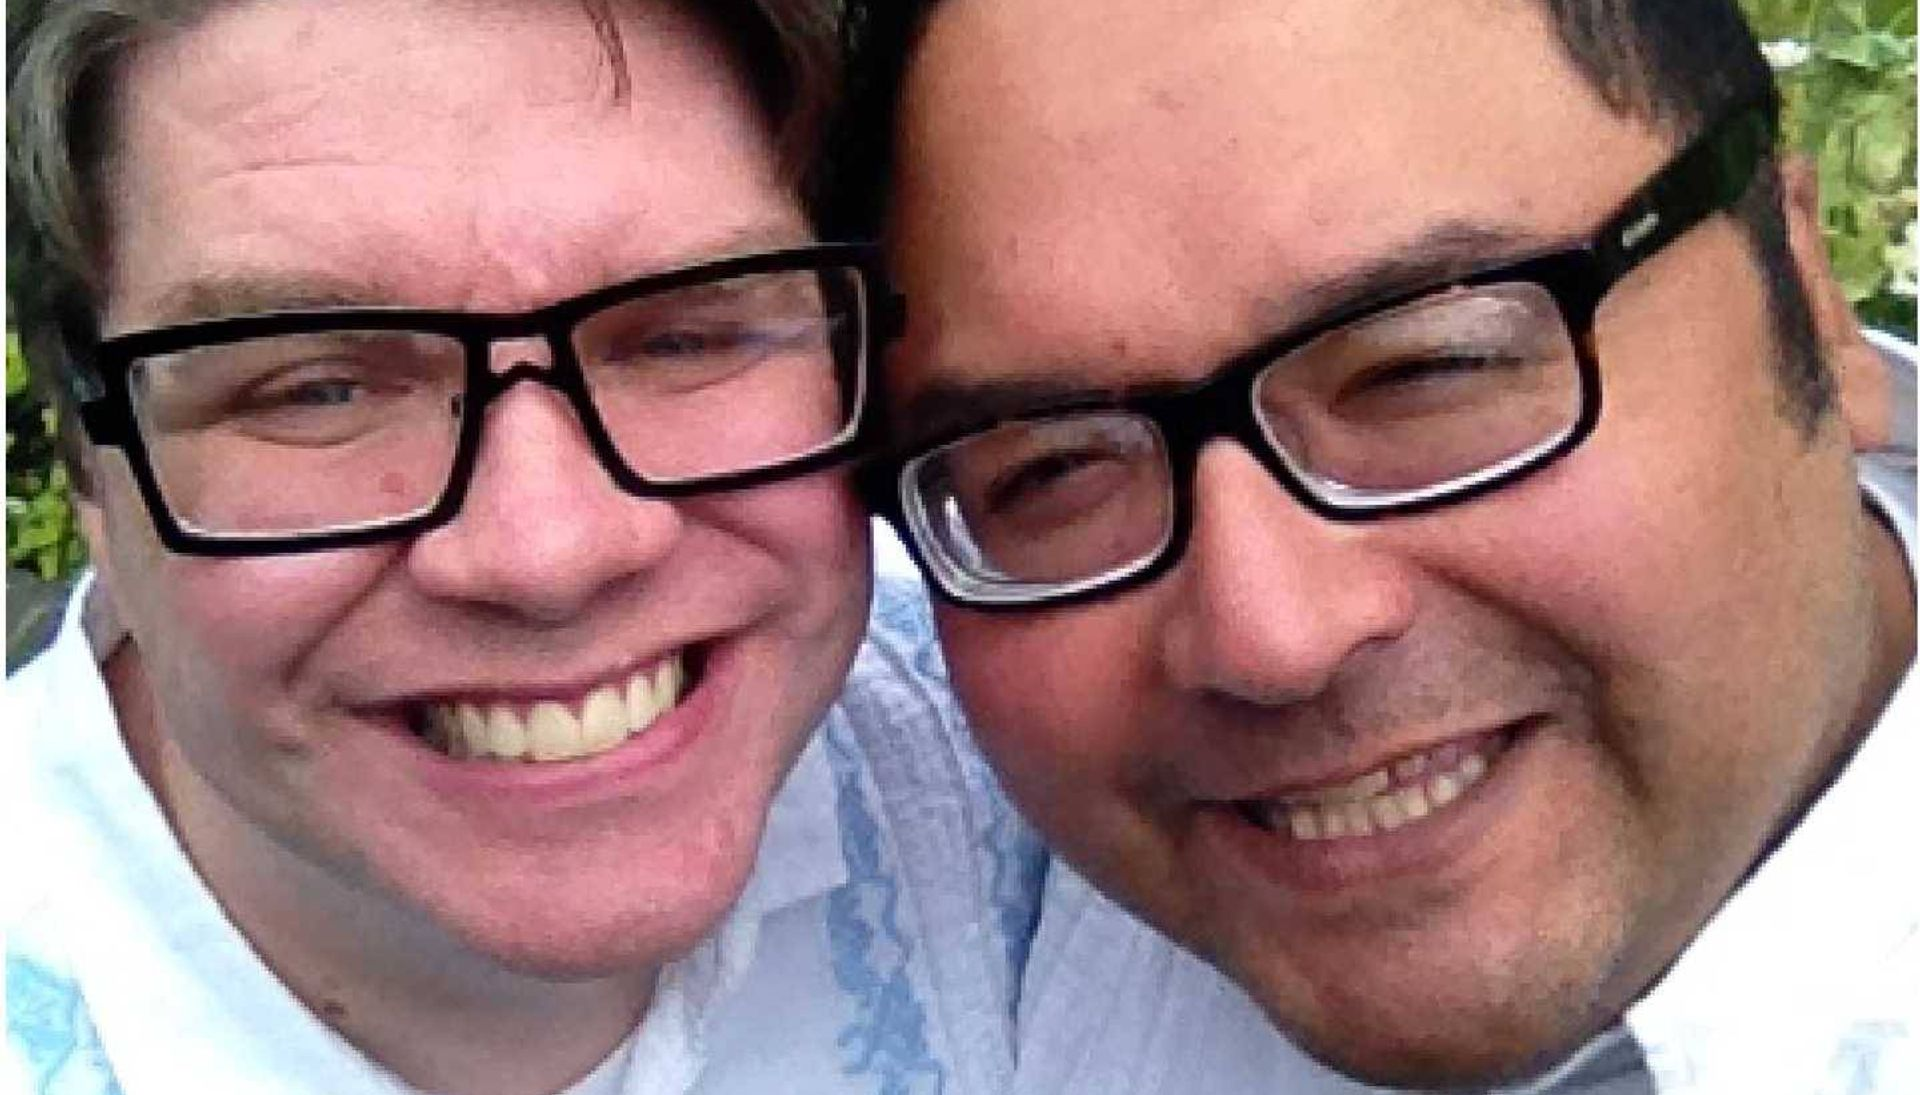 Two men dressed in blue shirts and glasses smiling